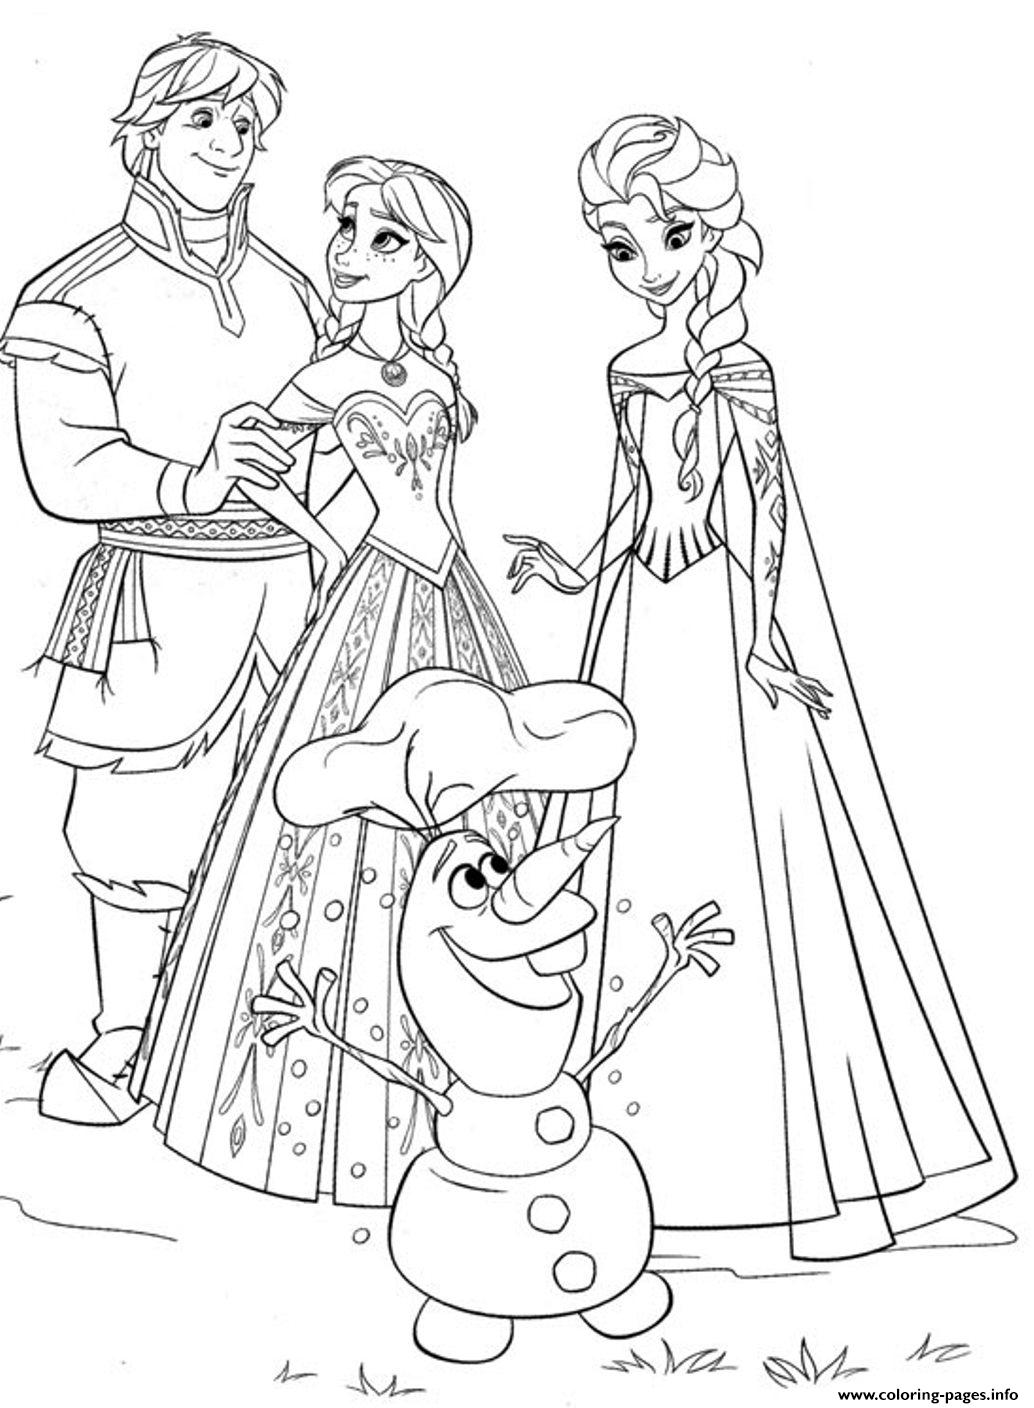 Frozen Family4eec coloring pages